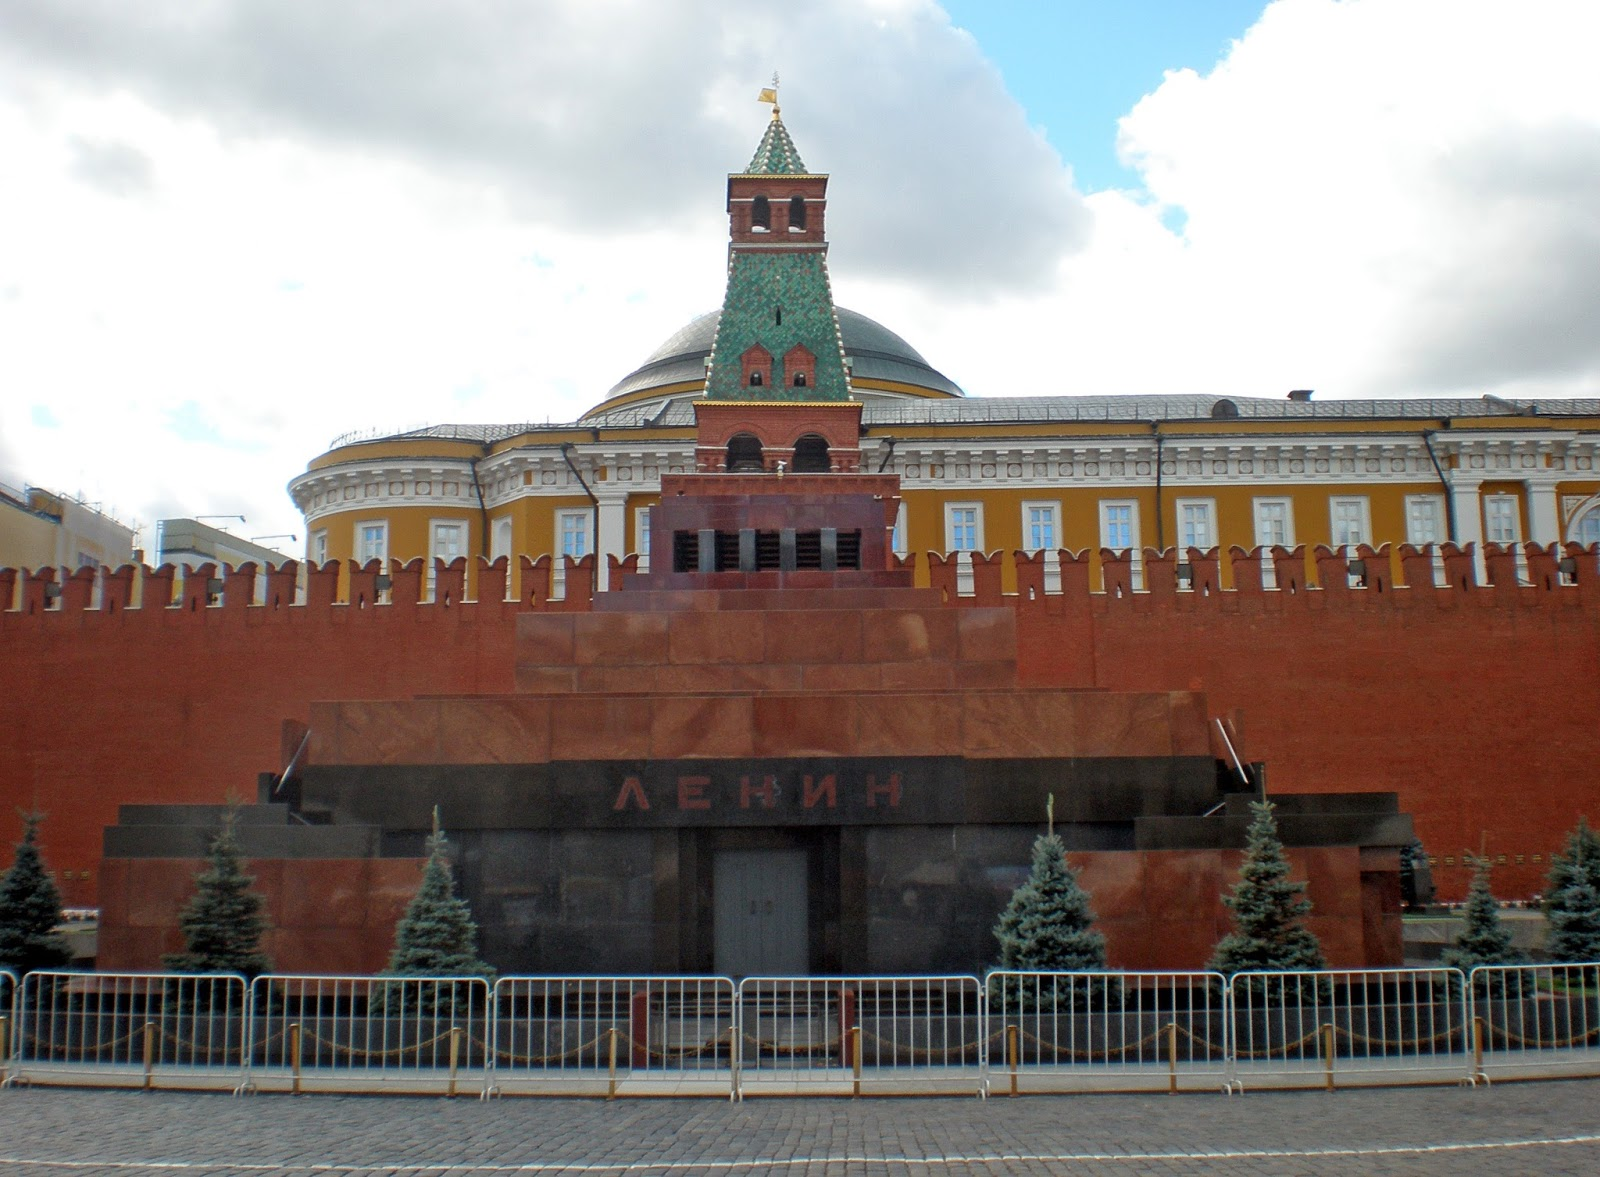 Lenin's mausoleum, Мавзоле́й Ле́нина, lenin's tomb, communism, socialism, russia, ussr, cccp, stalin, moscow, red square, october revolution, body, inside,